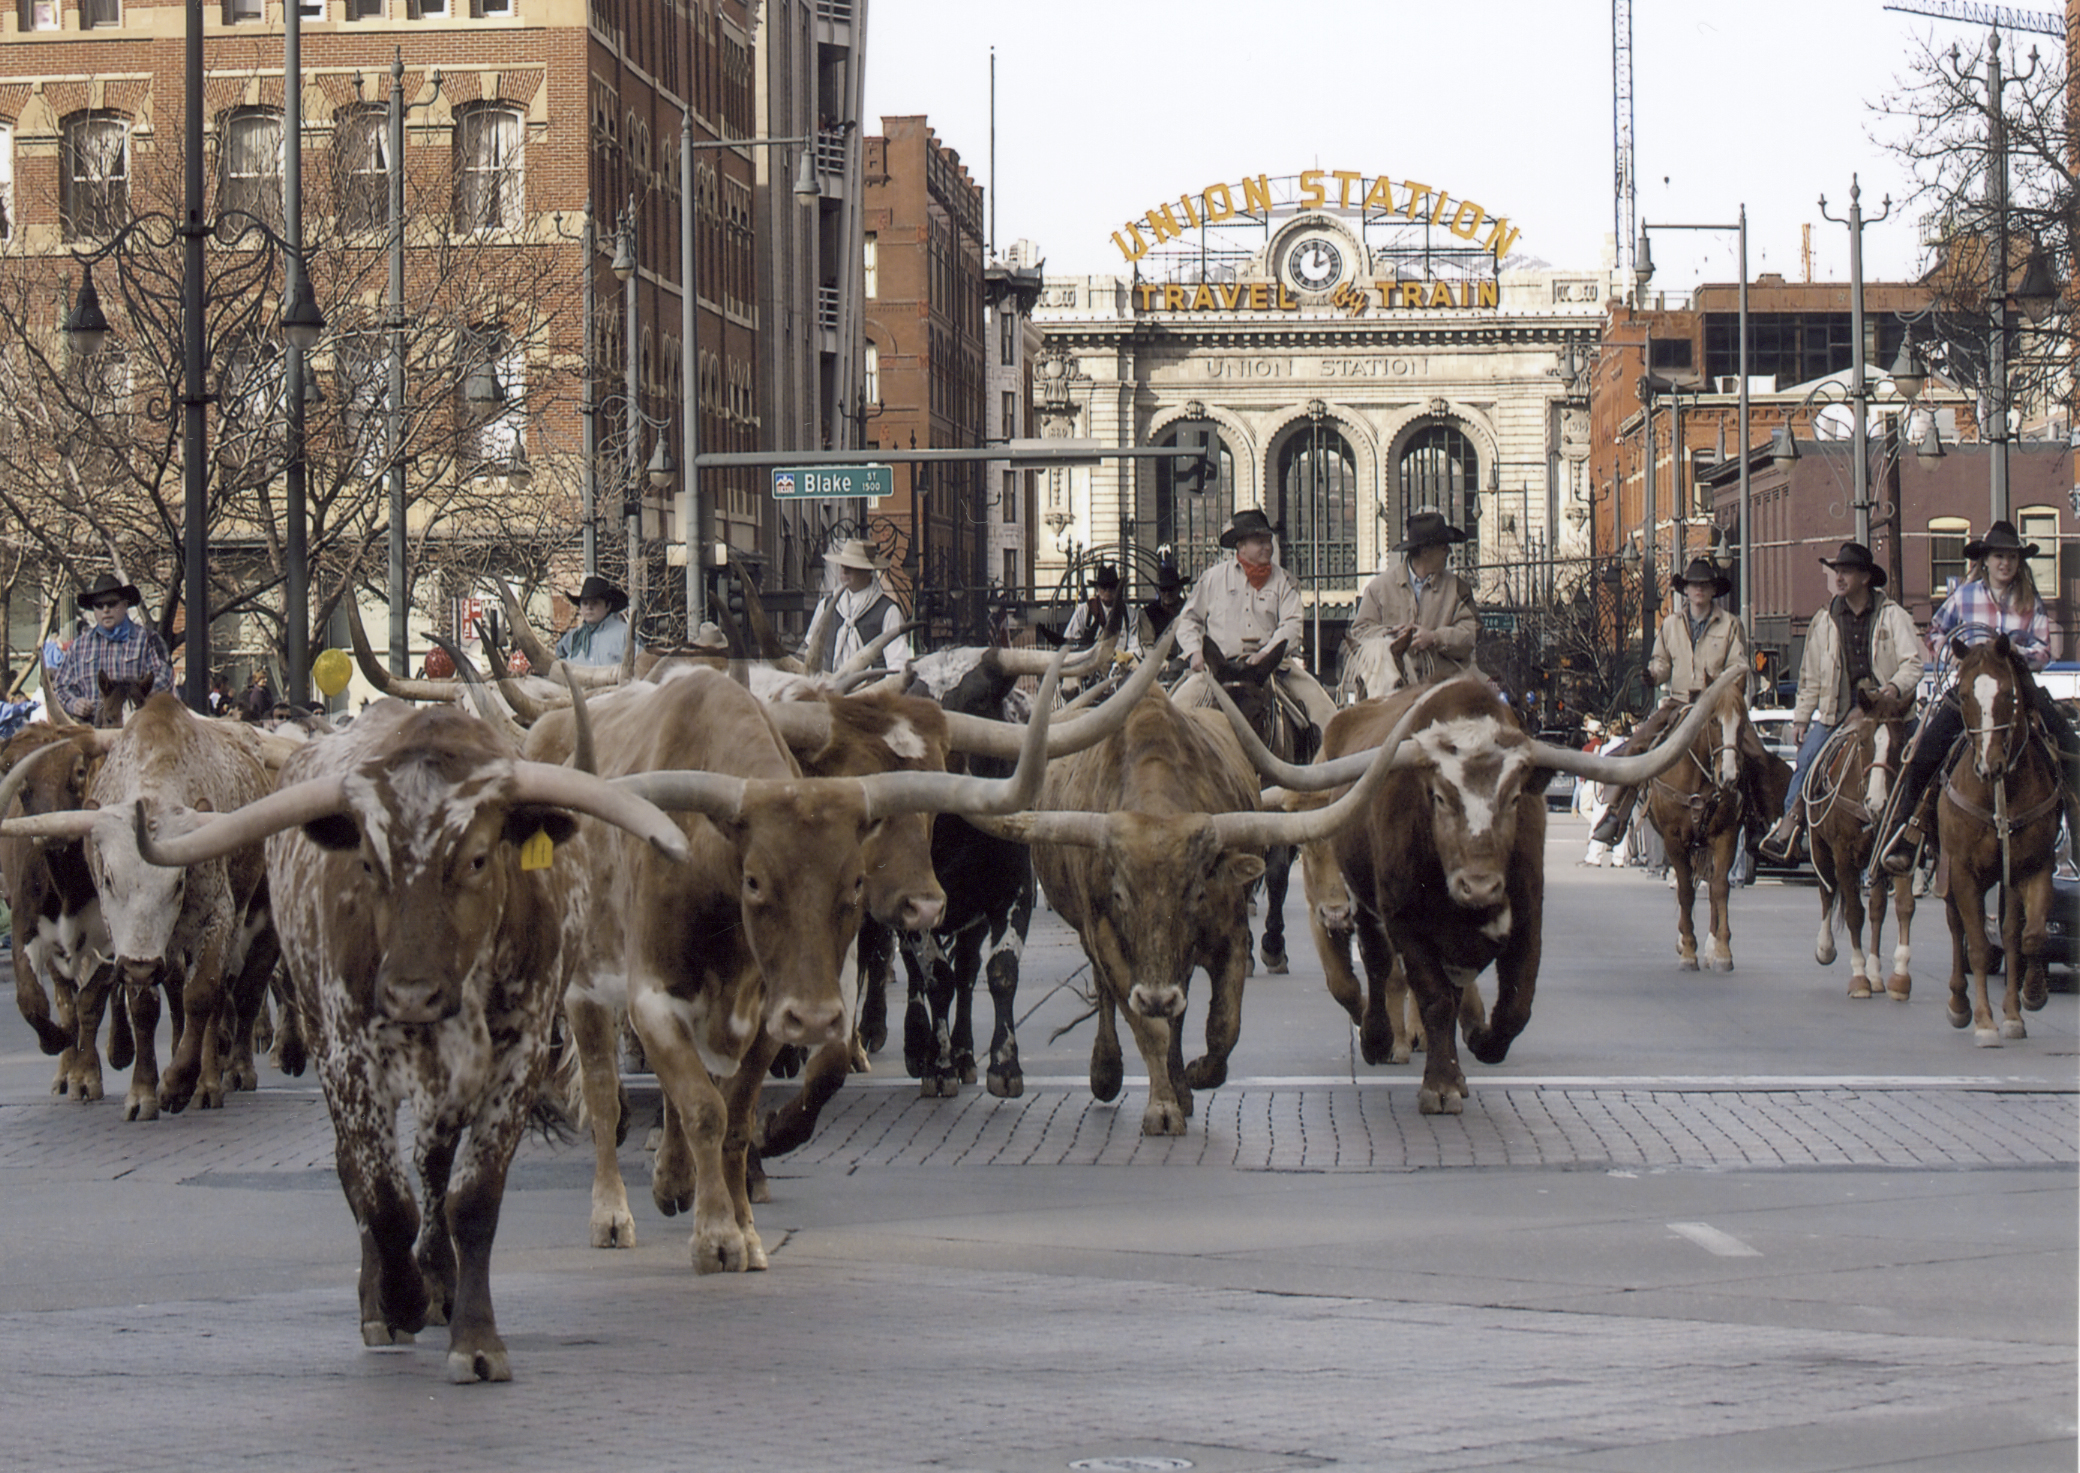 National Western Stock Show Parade - 17th Street, Downtown Denver, Colorado